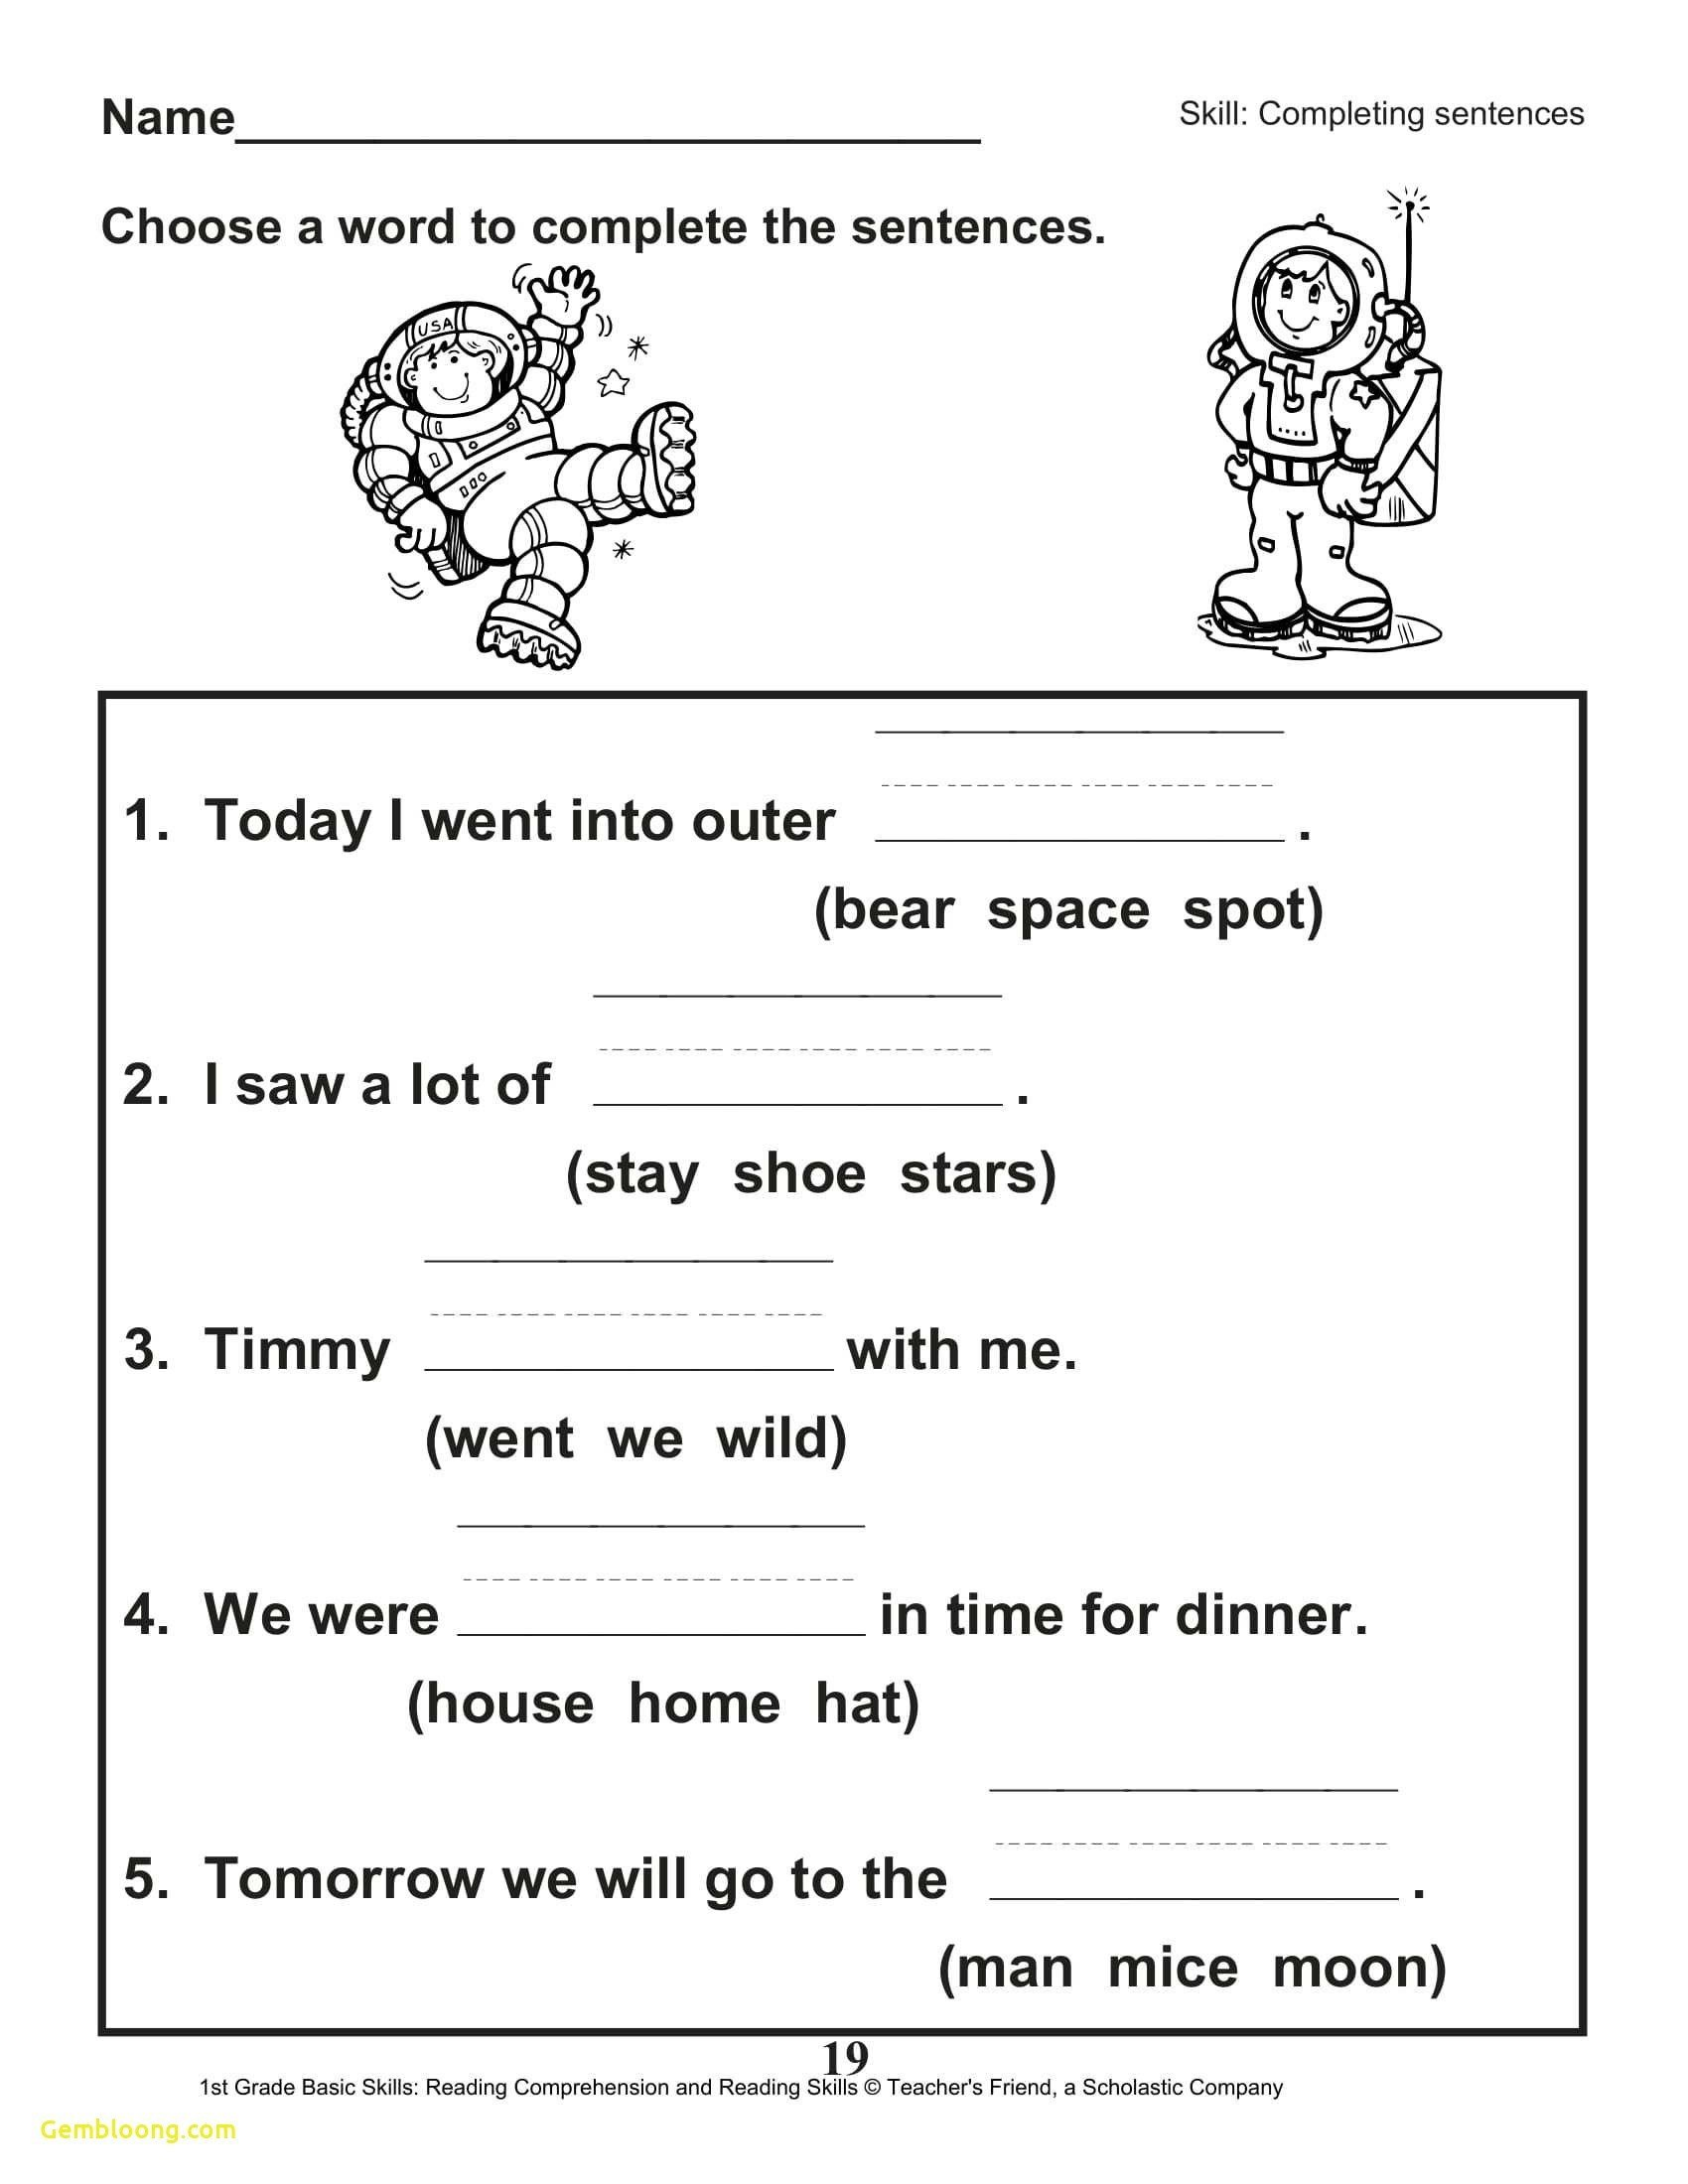 Timeline Worksheets for 1st Grade History Worksheets for First Grade